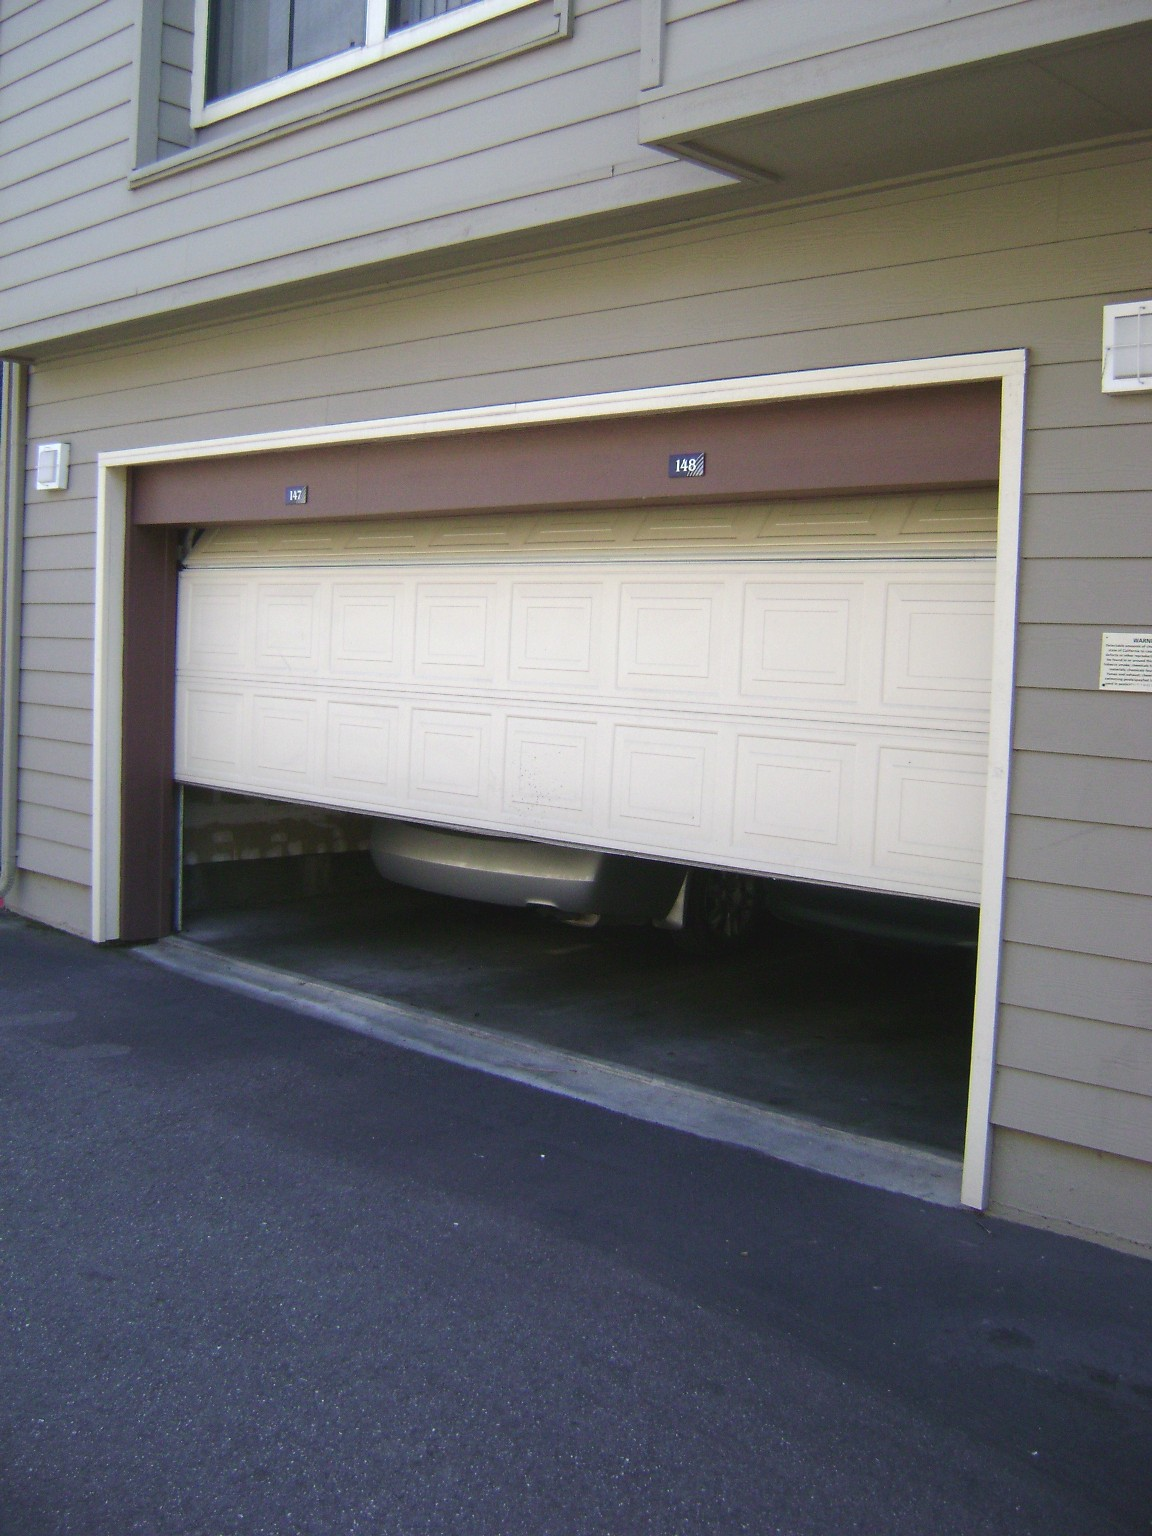 how to open a garage door manuallyGarage door  Wikipedia